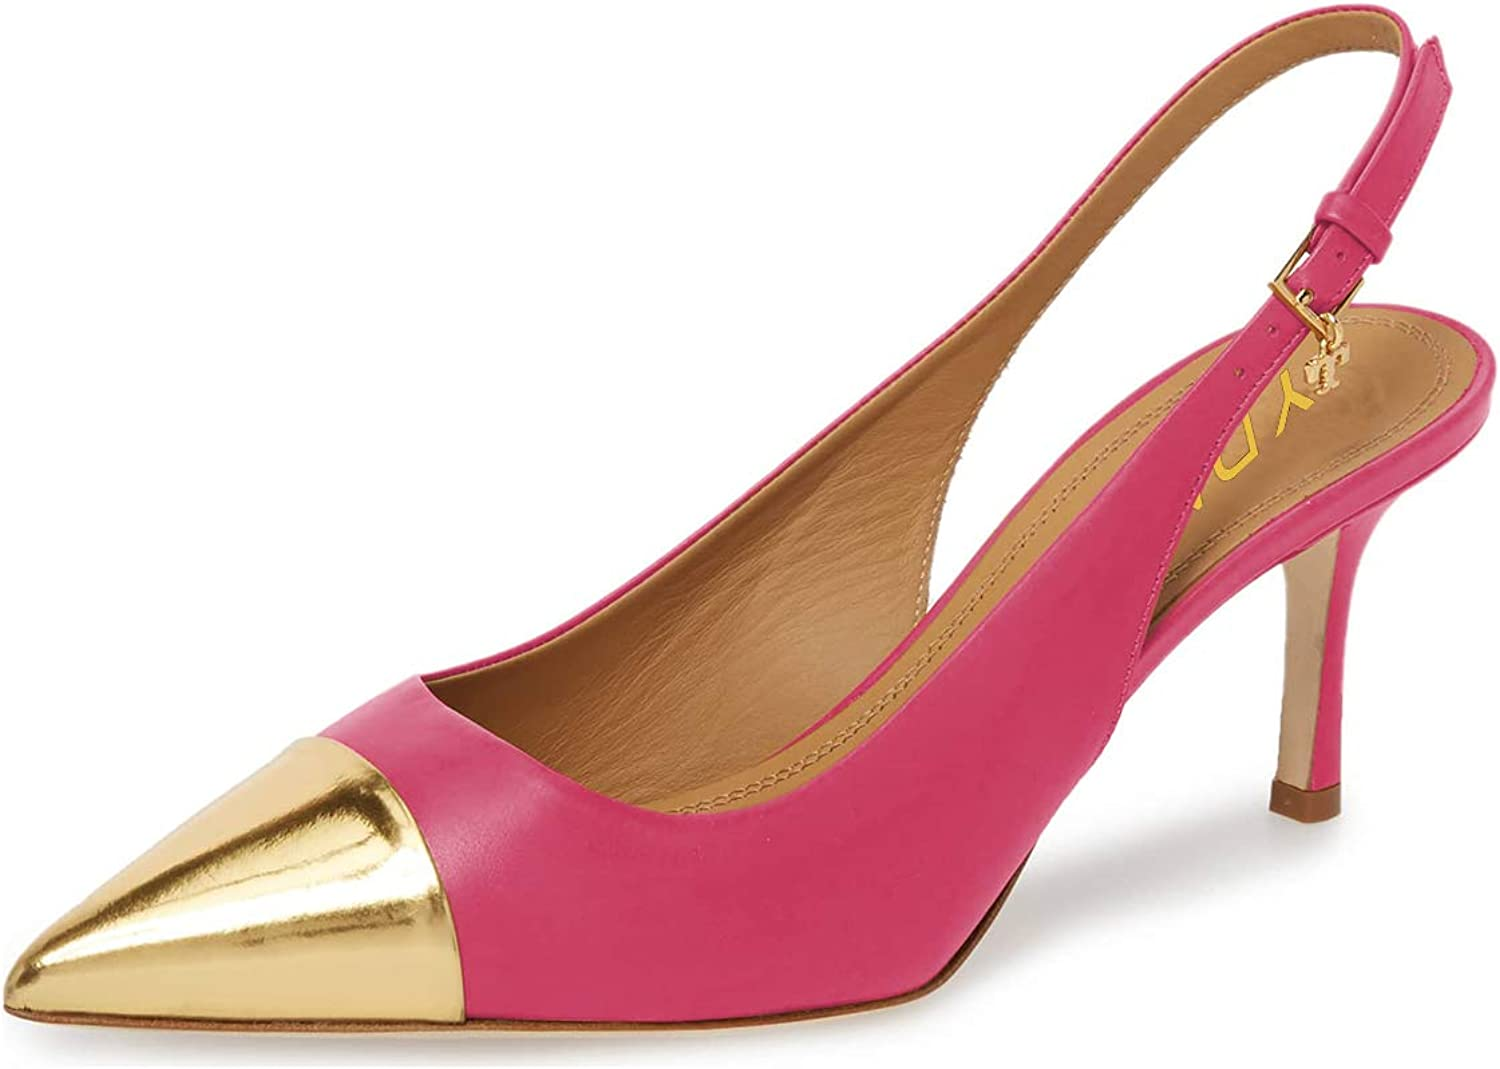 YDN Women Classy Pointed Toe Thin High Heel Slingback Office Lady Dress Pumps shoes